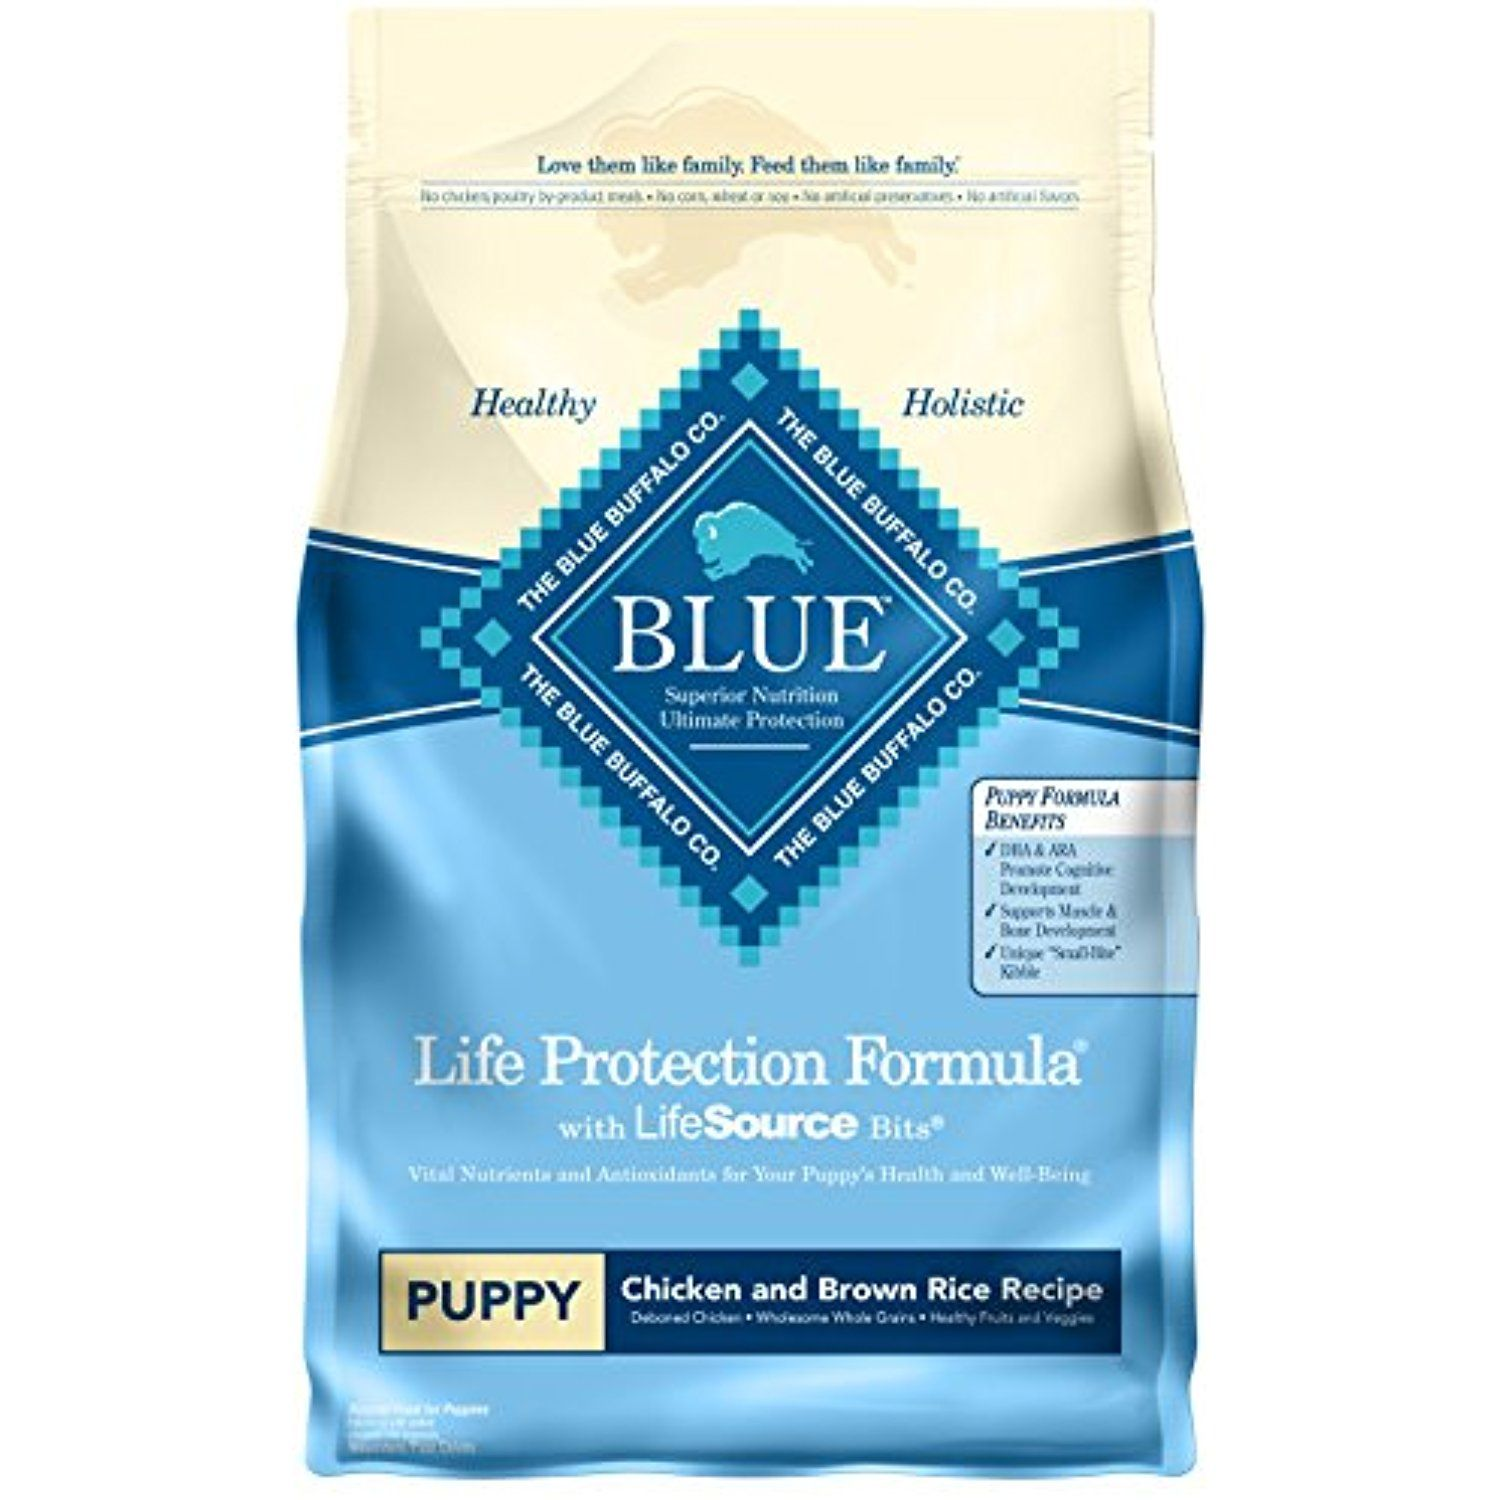 Blue Life Protection Formula Puppy Chicken And Brown Rice Dry Dog